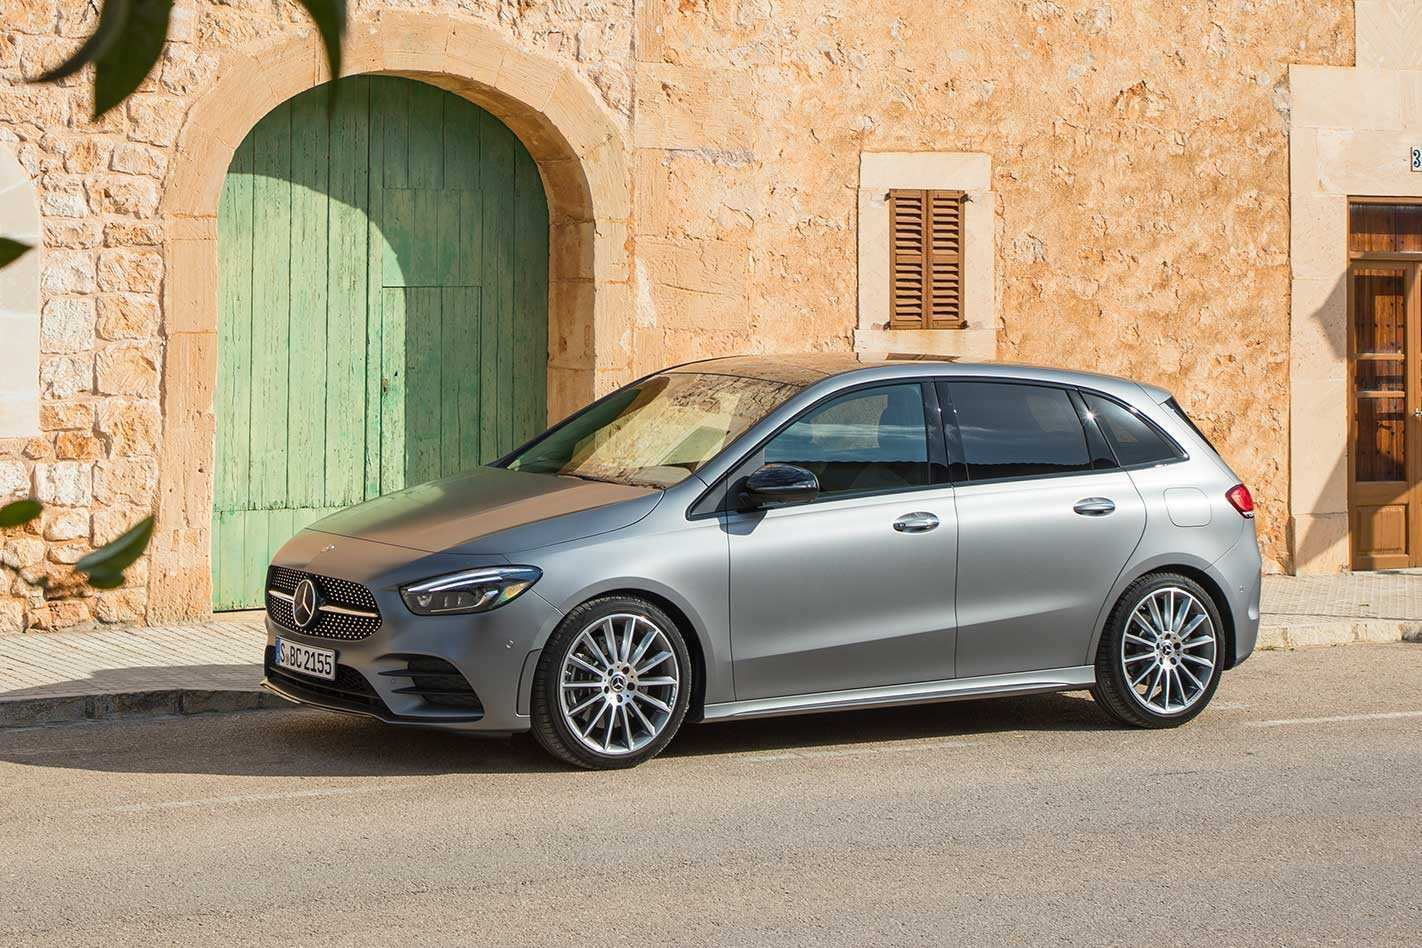 66 All New Mercedes 2019 B Class Price